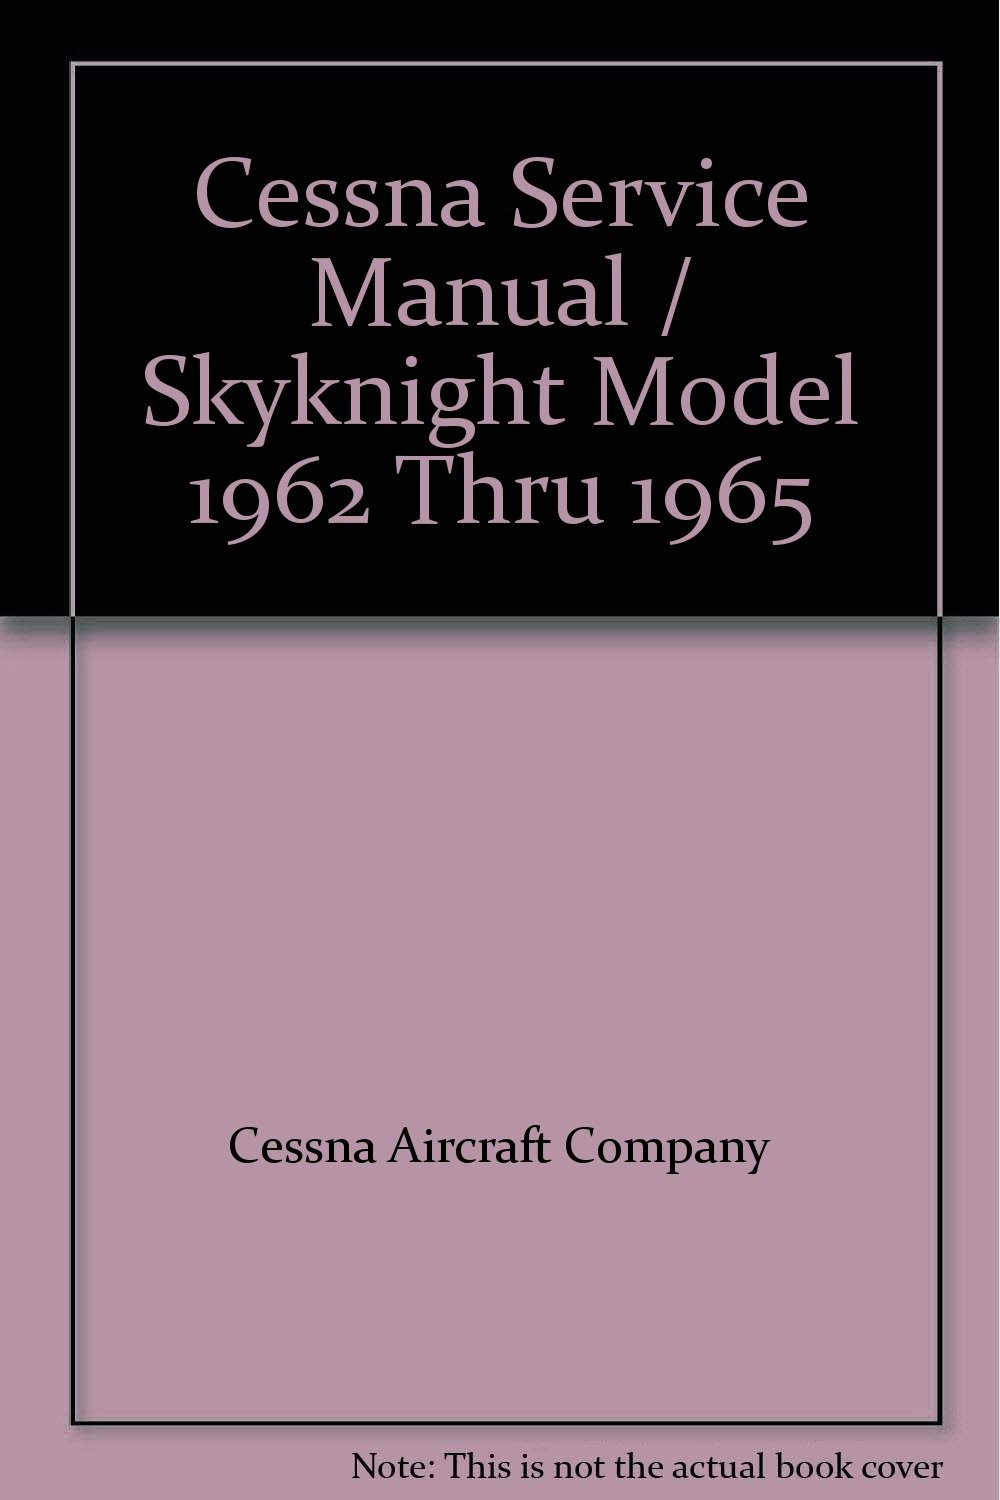 Cessna Service Manual/Skyknight Model 1962 Thru 1965: Cessna